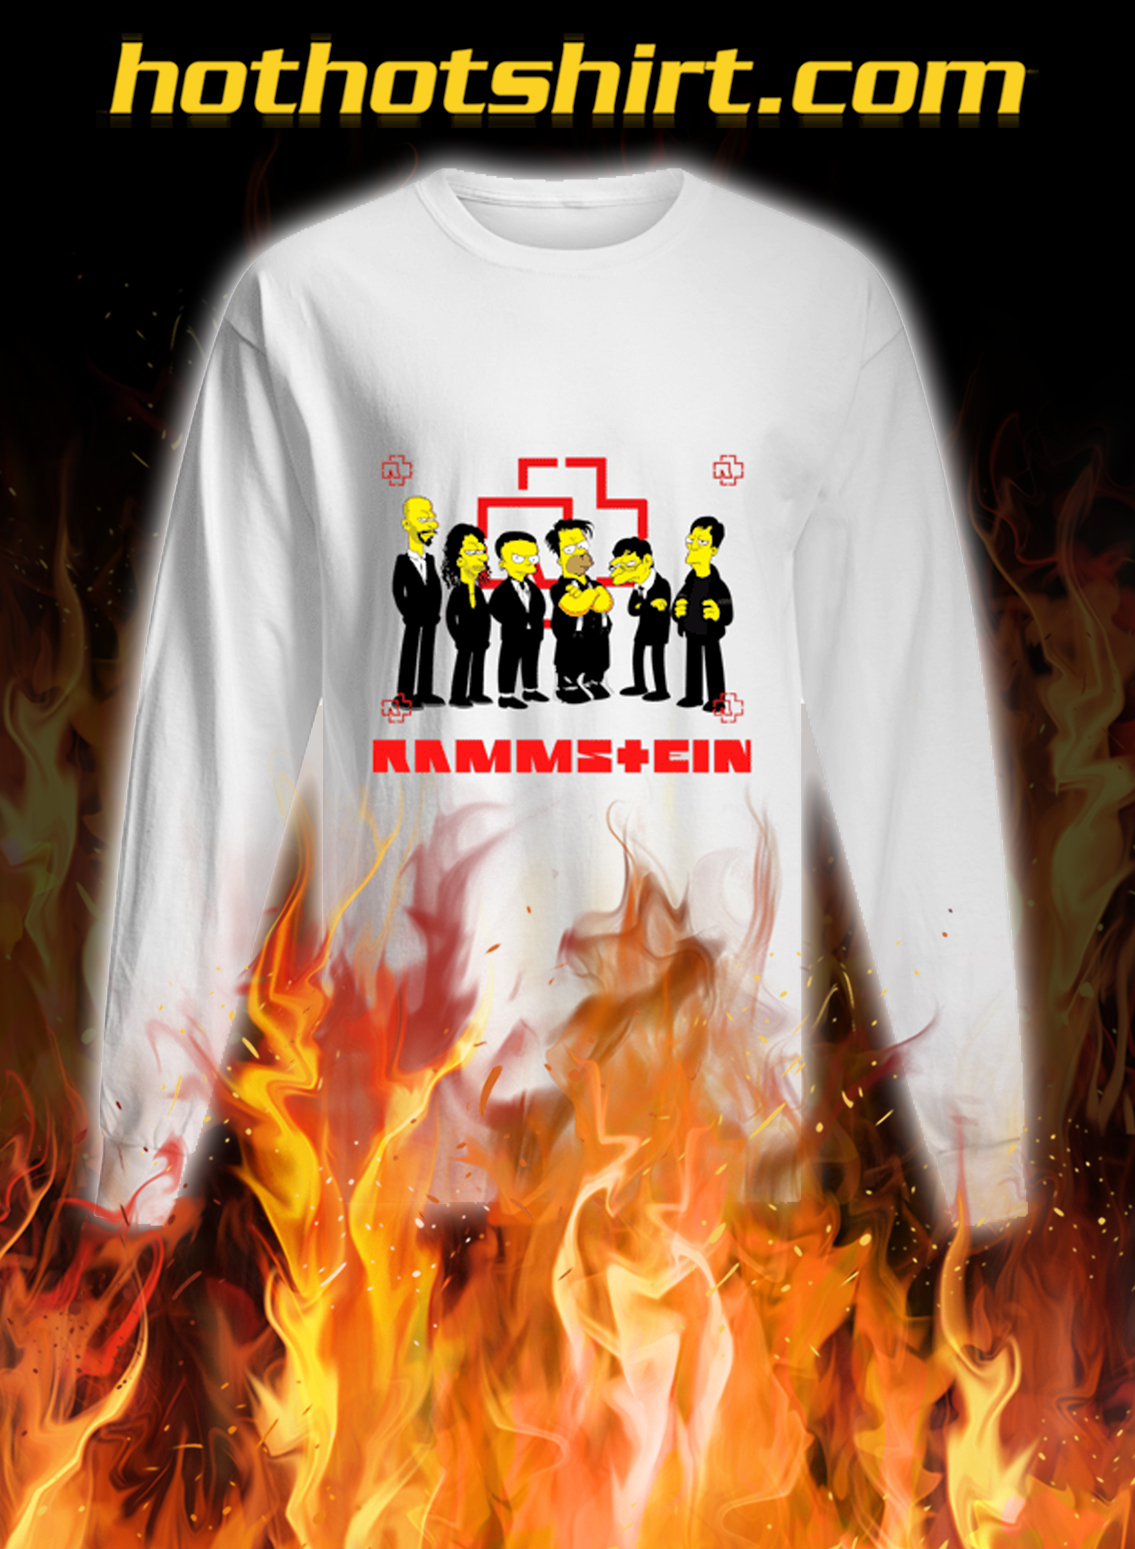 Rammstein the simpsons longsleeve tee